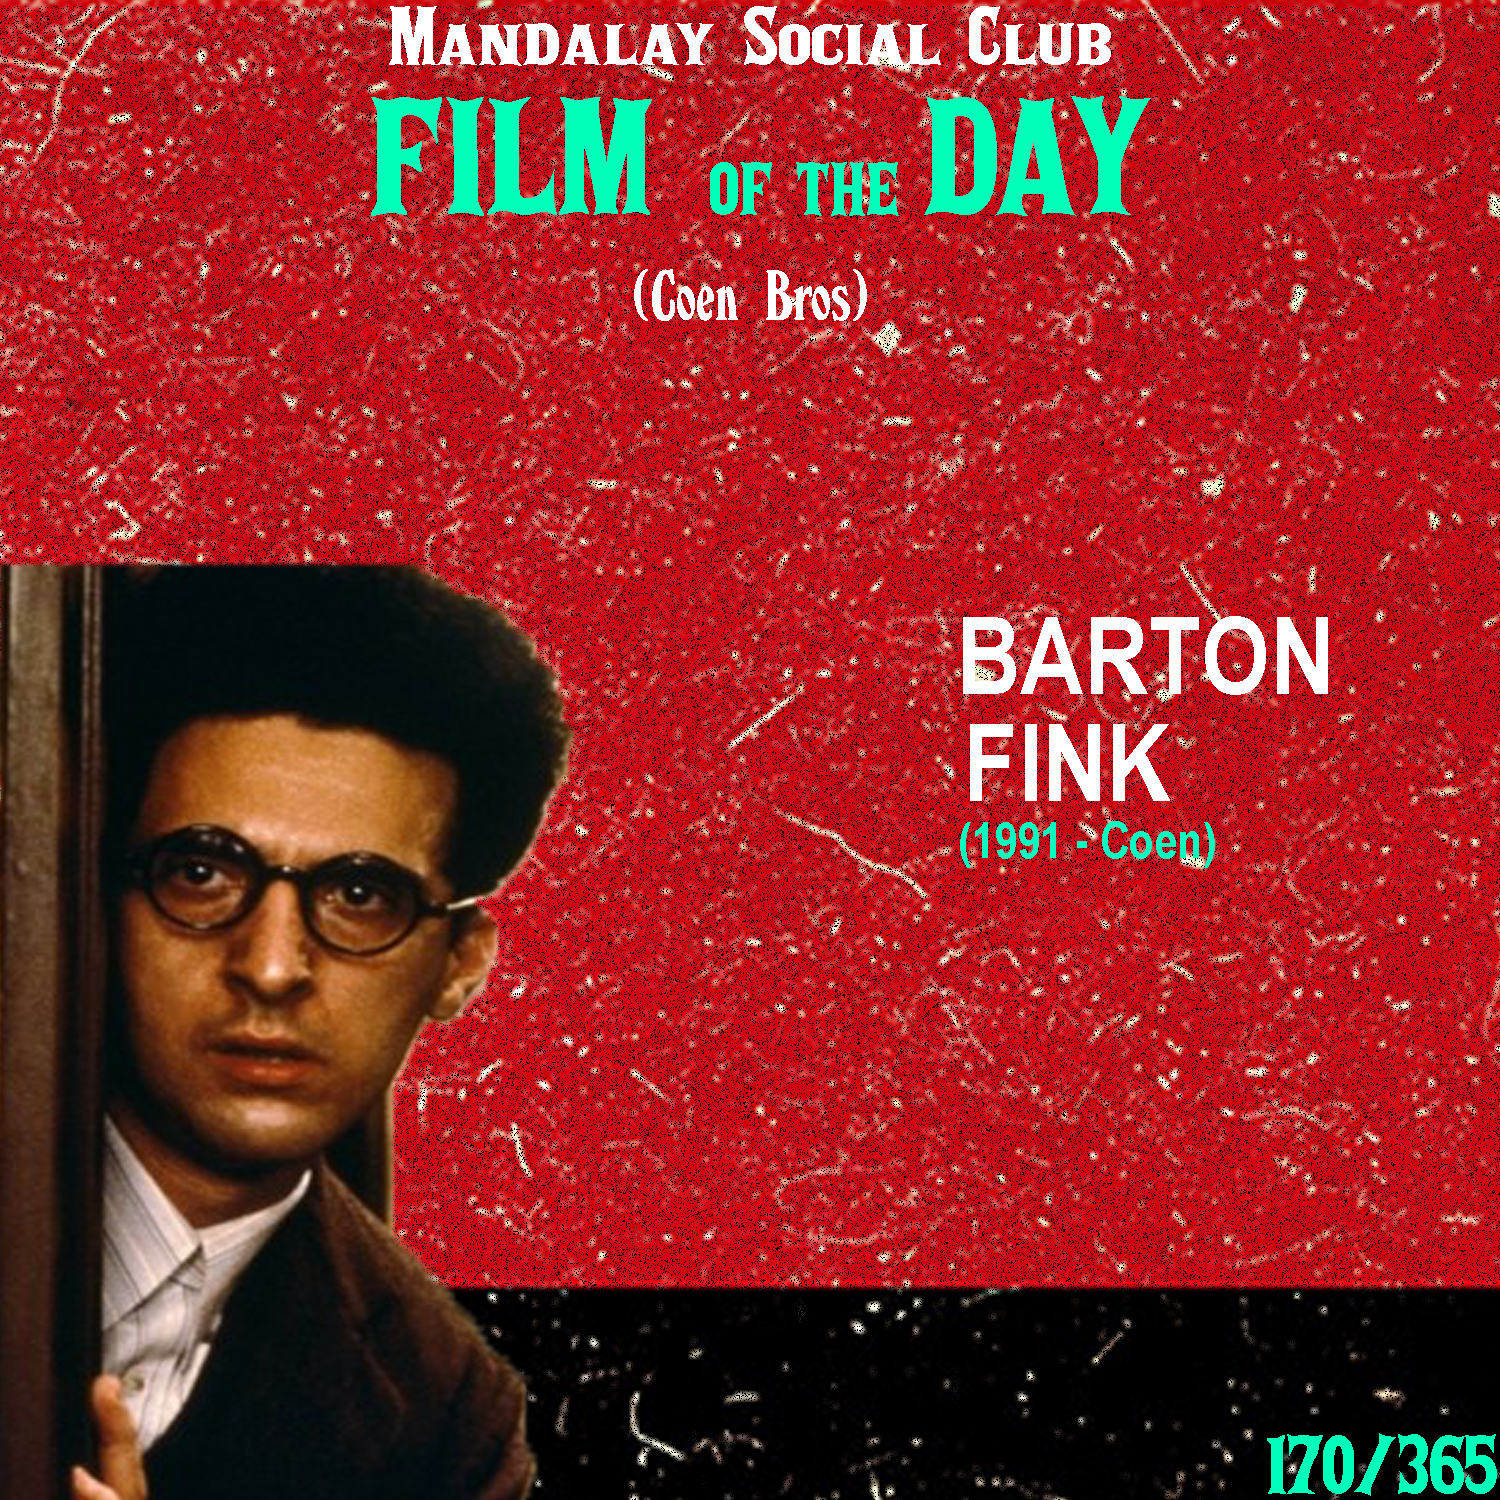 BARTON FINK     (dir. Coen Bros)   The Coen's followed  Raising Arizona  with a dense mystery noir,  Miller's Crossing . However, during the creation of that film, the brothers had quite the battle with writer's block and in the mean time banged out the script for Barton Fink in only a couple of weeks!  Barton Fink stars John Turturro as the titular character. He's a well-respected theater director from New York who agrees to go out to Hollywood to work in the pictures. Once he gets to Hollywood and checks into the barely standing Hotel Earle, he begins to draw writer's block as he attempts to write a wrestling script for a B-Movie. He takes his job as a writer seriously, while the executives at Columbia simply want him to write without any regard for his artistic integrity. While struggling with the intensity of being a writer, Barton begins experiencing strange events in the Hotel Earle before he finally finishes the script.  The Coen's topped the wackiness of  Raising Arizona  with  Barton Fink  as they pull clear influences from directors like David Lynch and Roman Polanski while still melding their now identifiable sense of humor throughout the movie. The Coen's, beautifully depict the stressed and otherworldly mindset of a writer and Charlie Kaufman even stated that this is the greatest film about writers ever made, which I'd agree with until Kaufman himself made  Adaptation  in 2002.    5/5     WATCH: Hulu